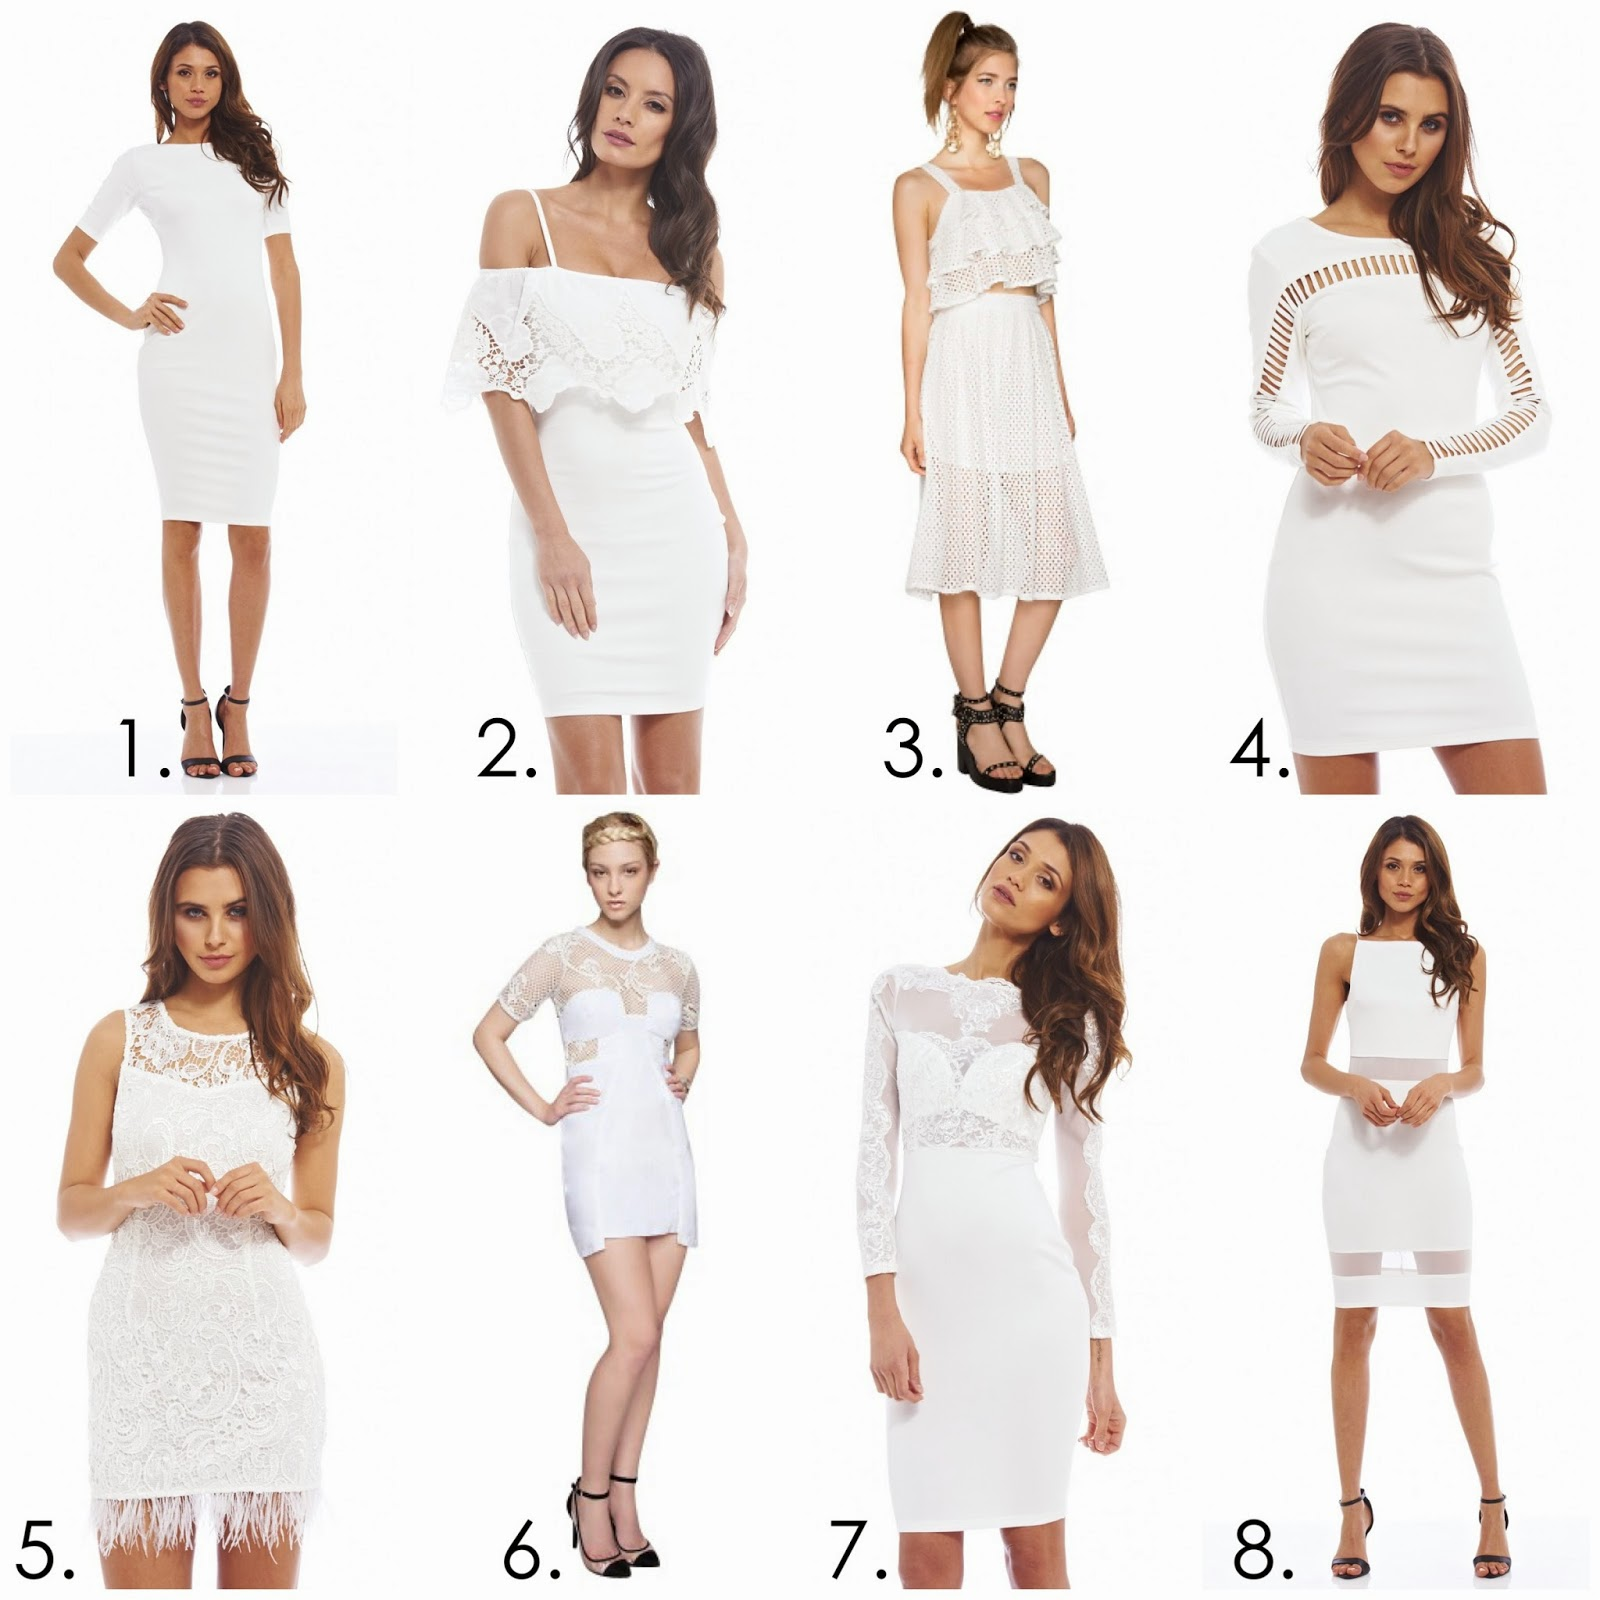 bacheloretty outfit, white dresses for bachelorette party, white dresses for bridal shower, white for rehearsal dinner, affordable bride to be dresses, bride to be ides on what to wear, sexy dresses, white lace sexy dresses, san diego fashion blogger, san diego style blogger, best of san diego blogs